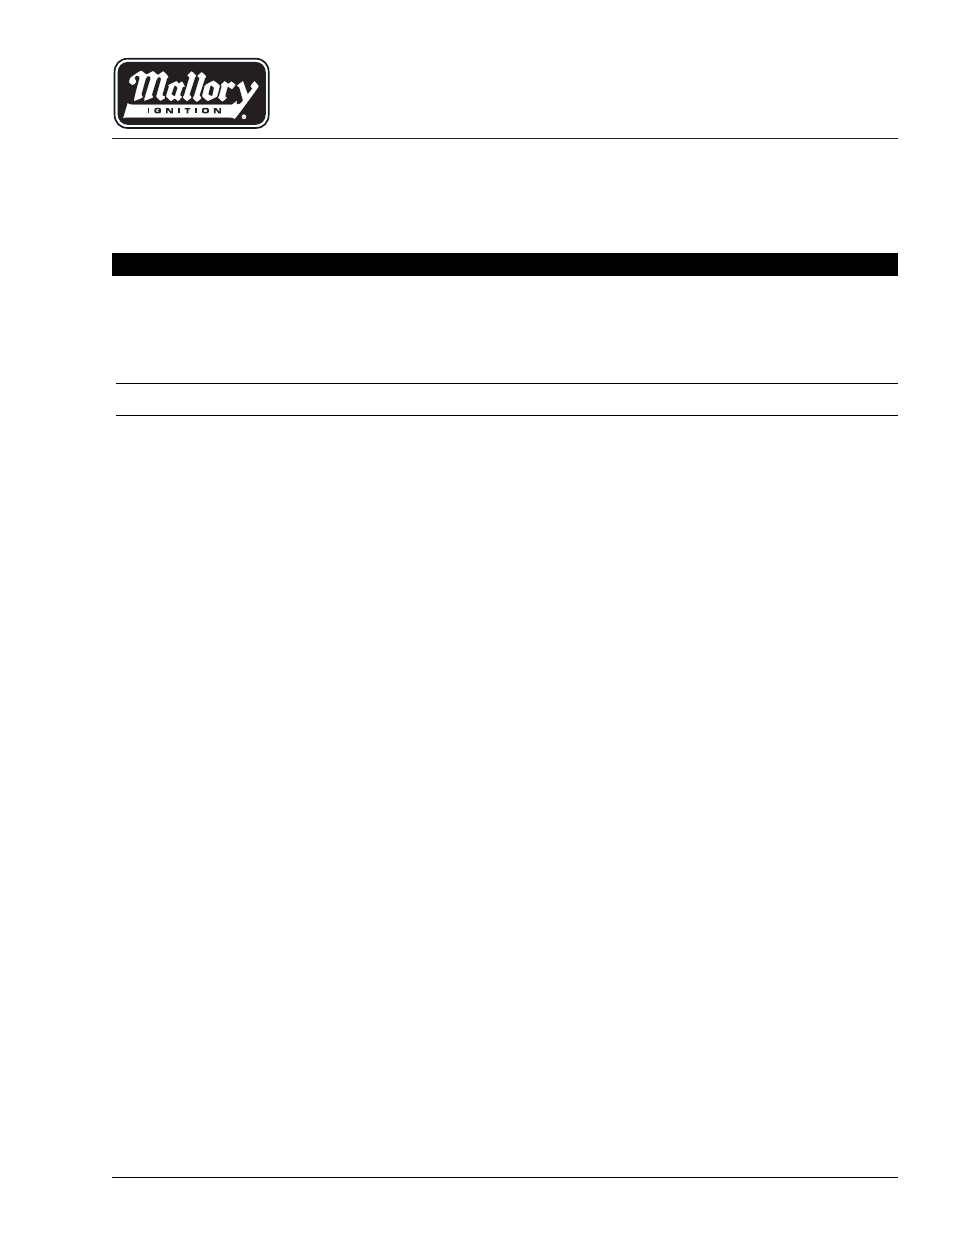 mallory ignition mallory unilite distributor page1 mallory ignition mallory unilite distributor user manual 13 mallory unilite distributor wiring diagram at soozxer.org